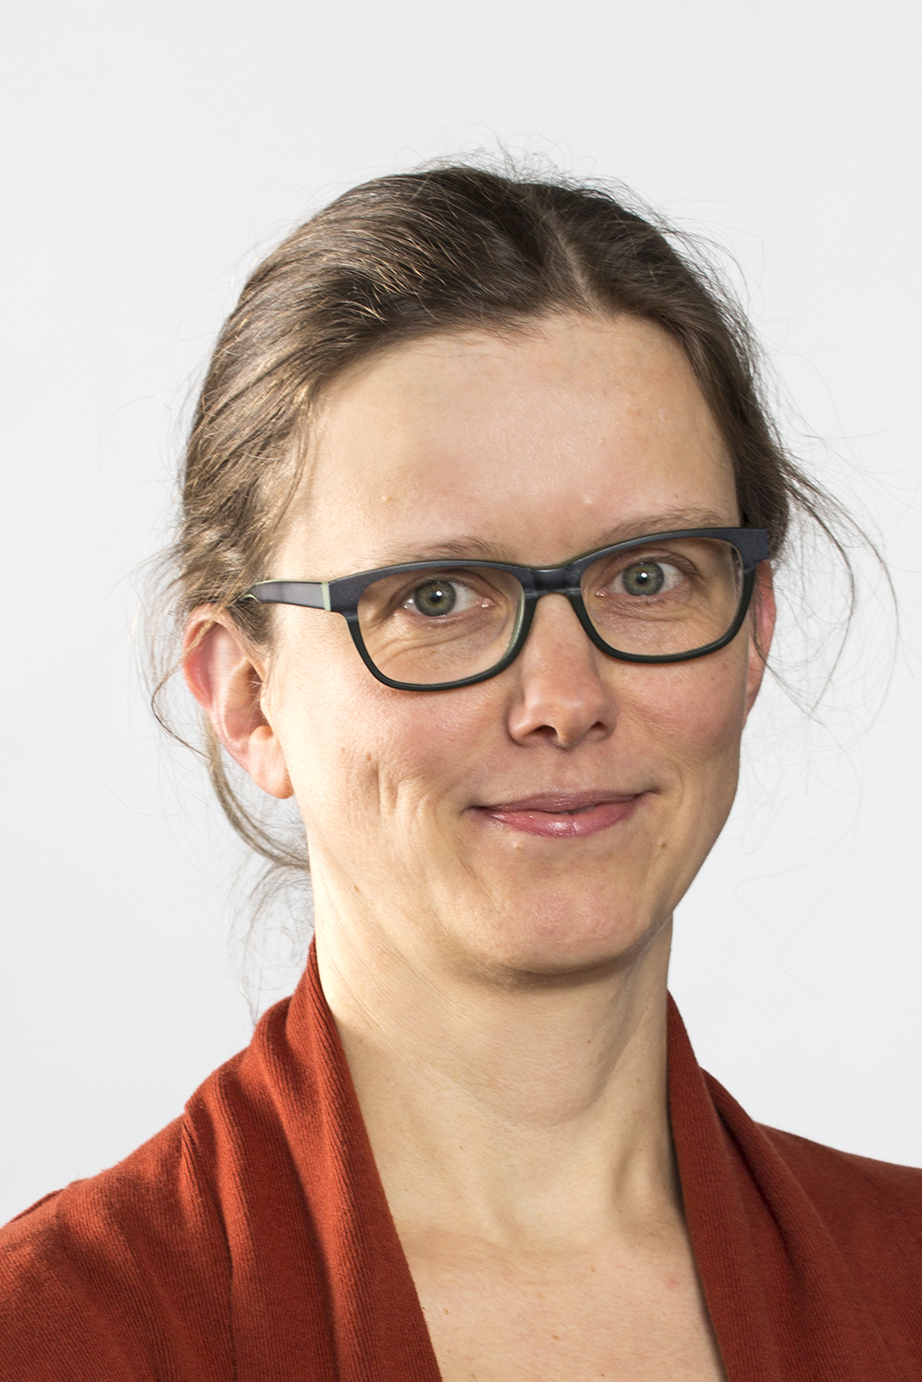 Photo of Clasien Schipper, de